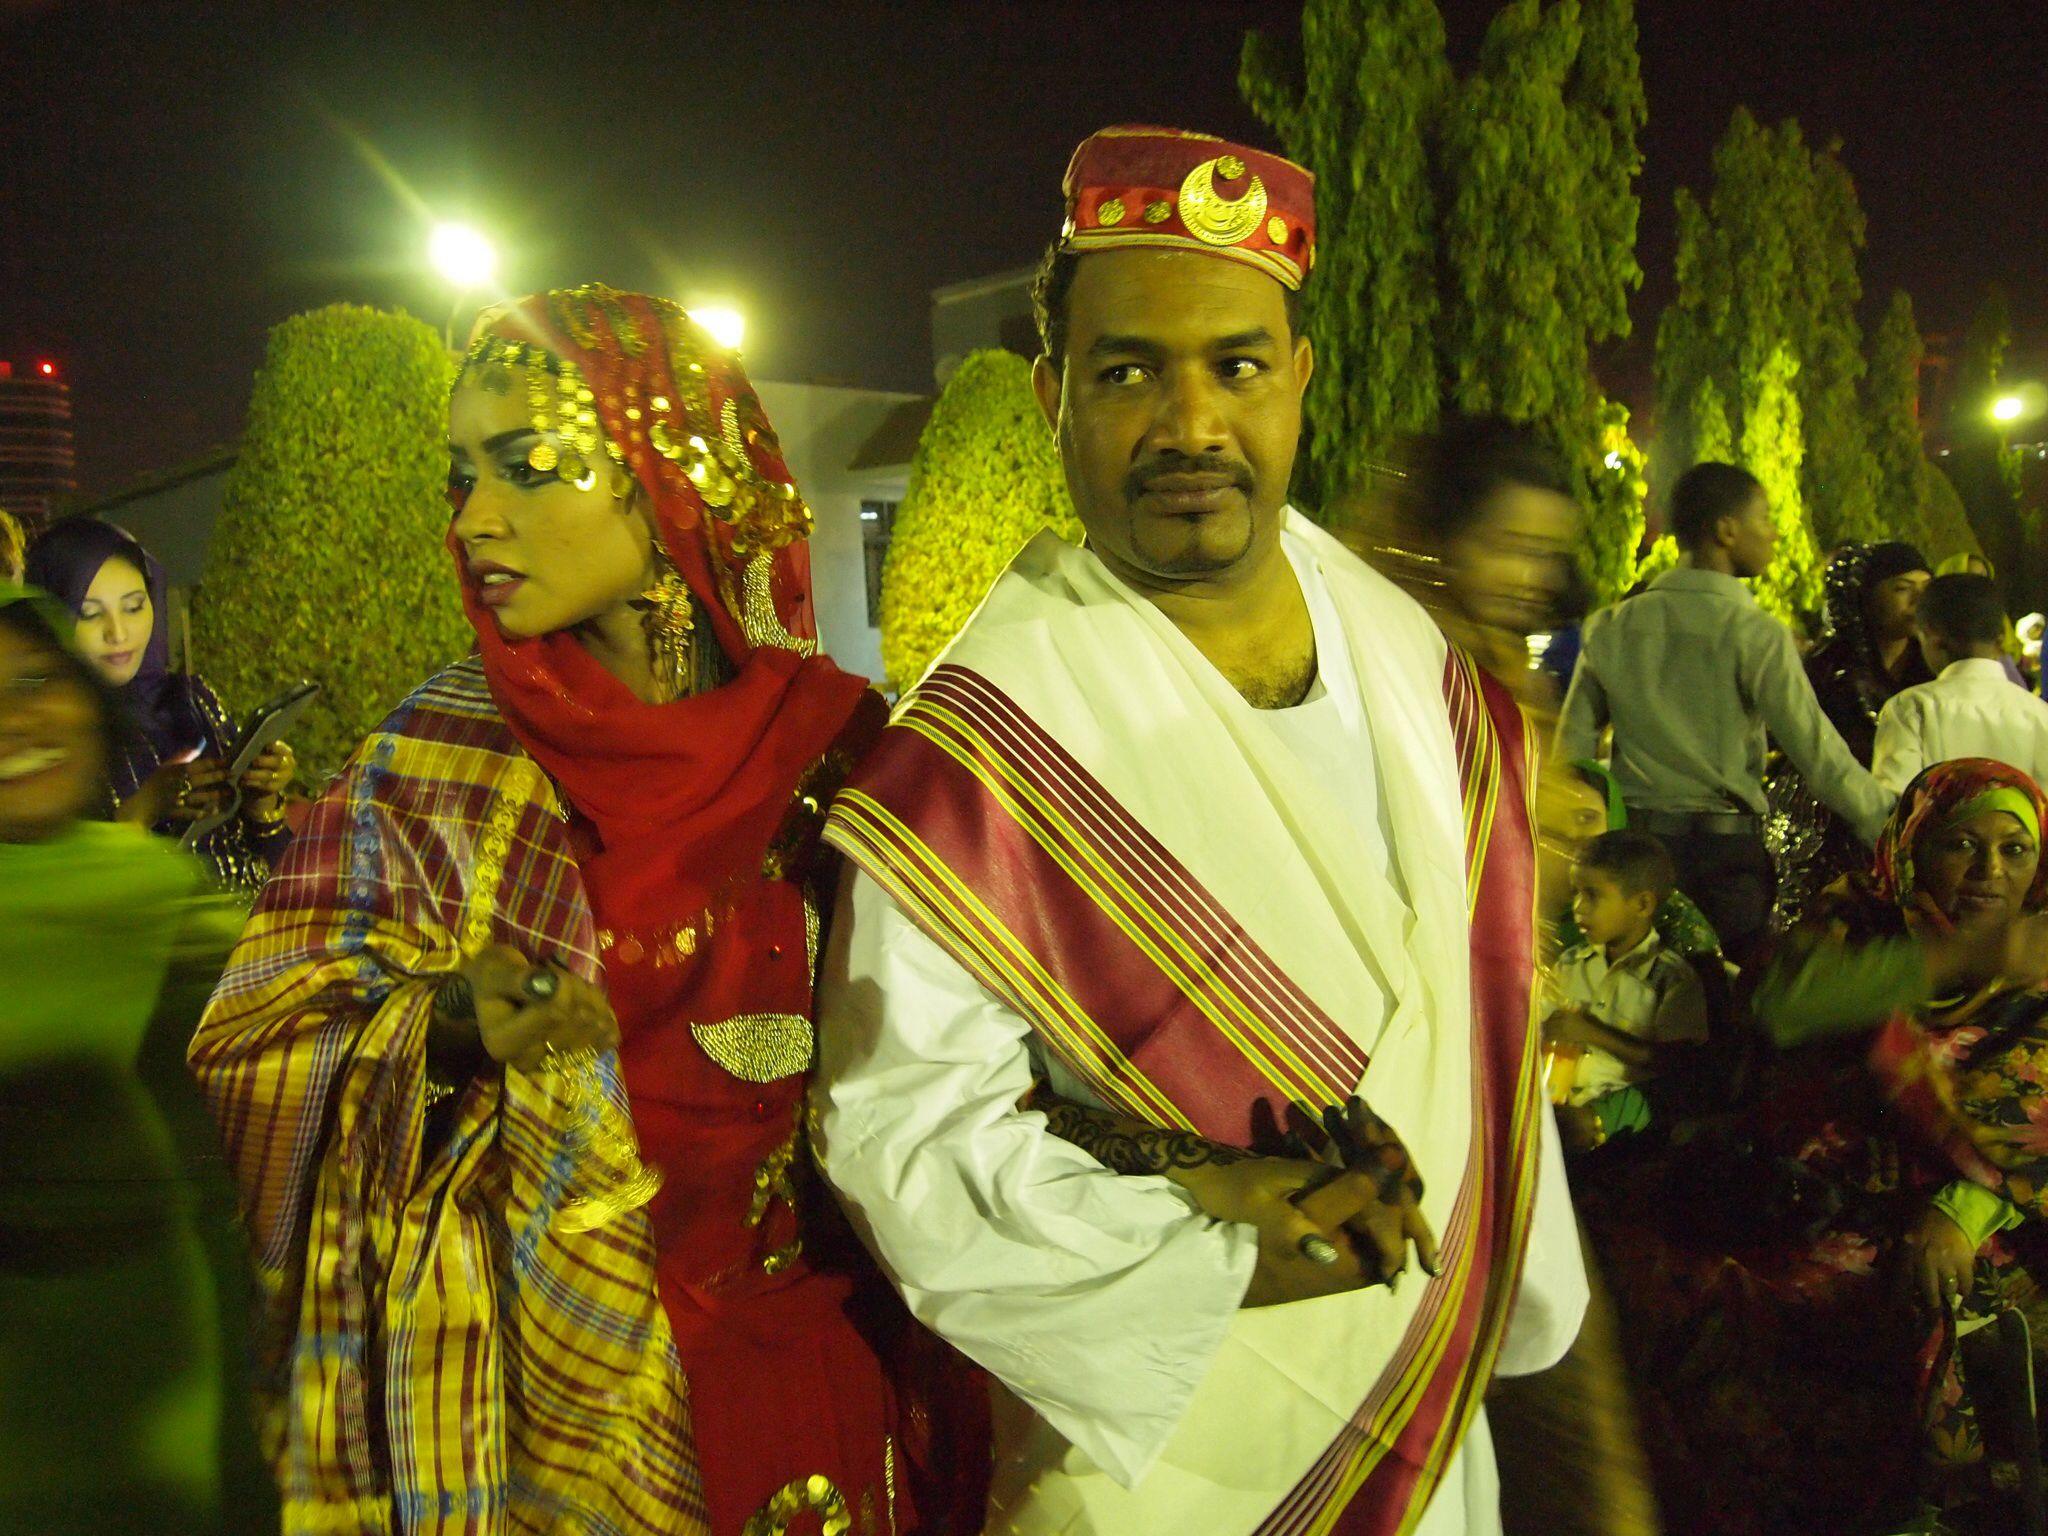 Sudanese wedding rituals and traditions - Sudanese Traditional Wedding